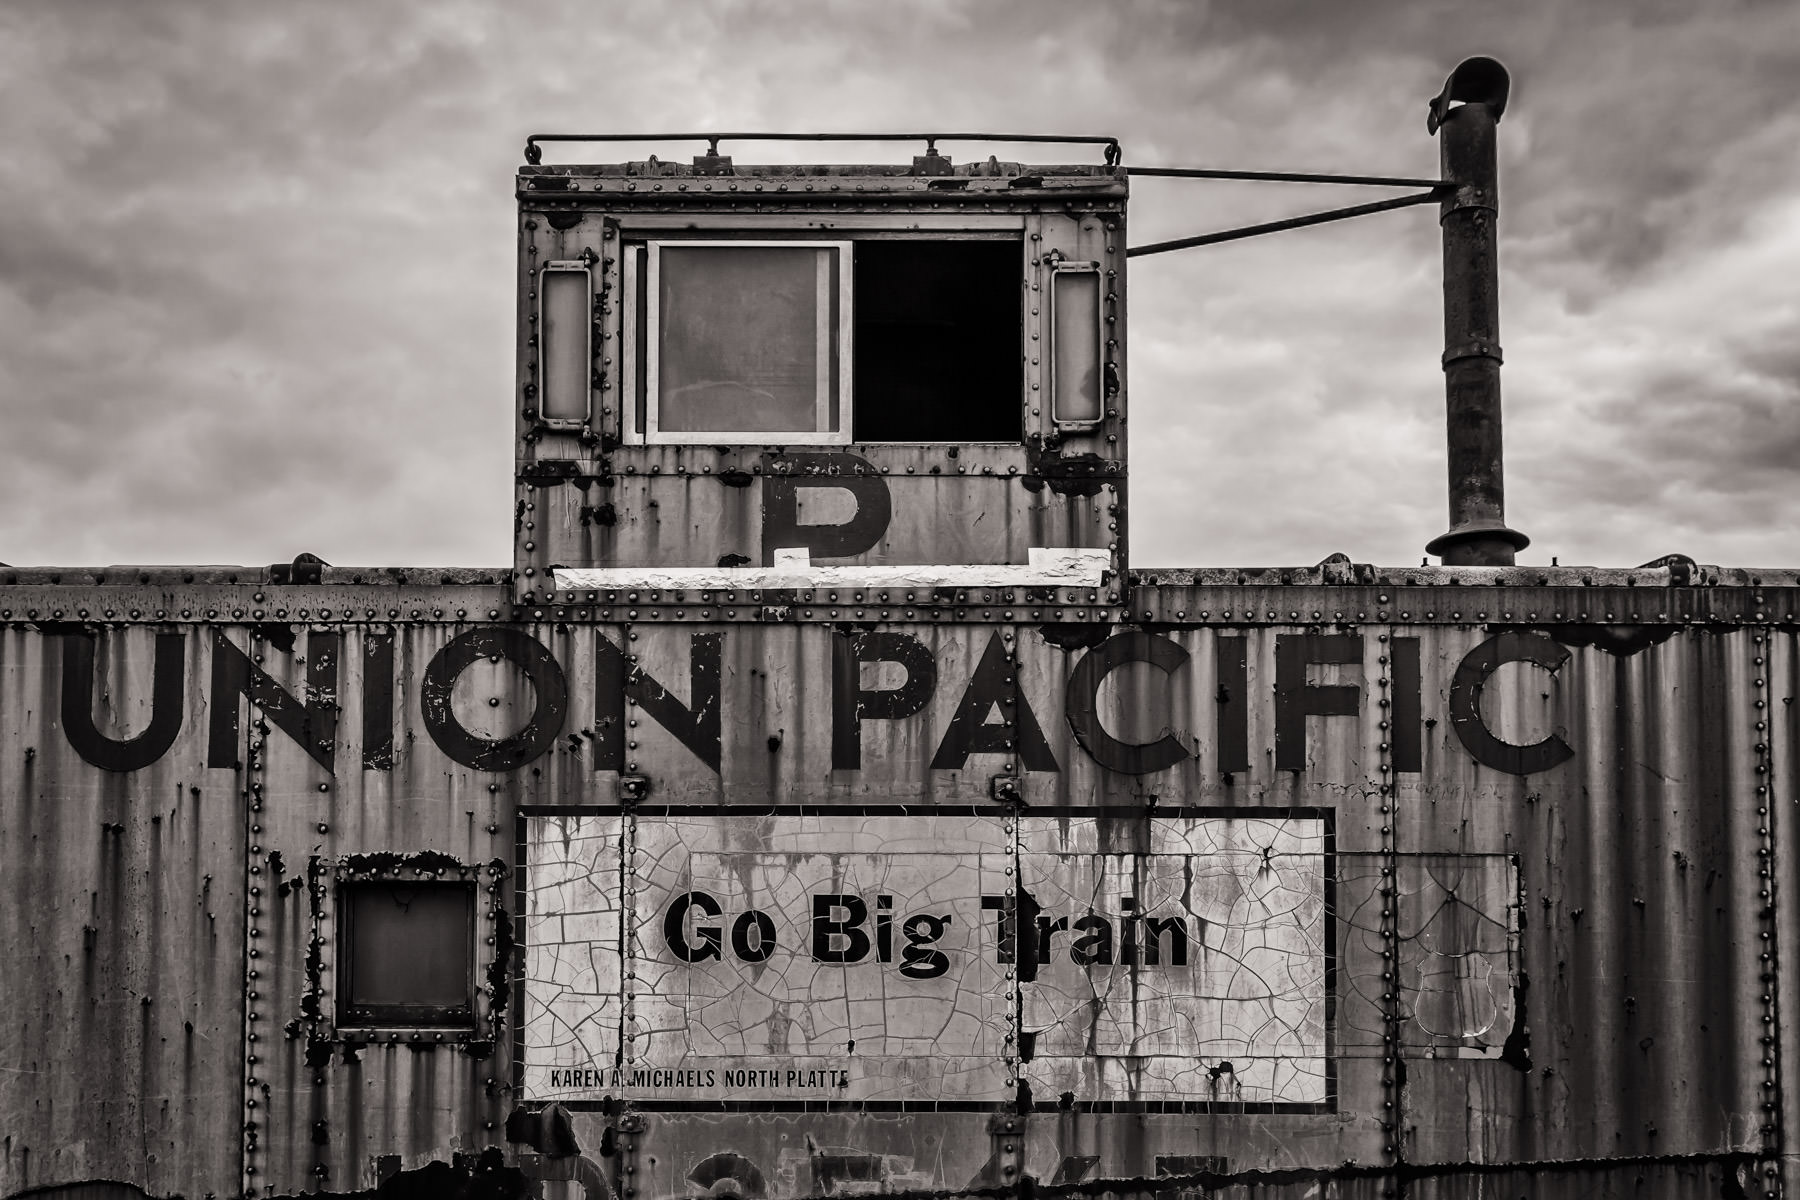 A dilapidated Union Pacific caboose found in Grapevine, Texas in the collection of the Grapevine Vintage Railroad.